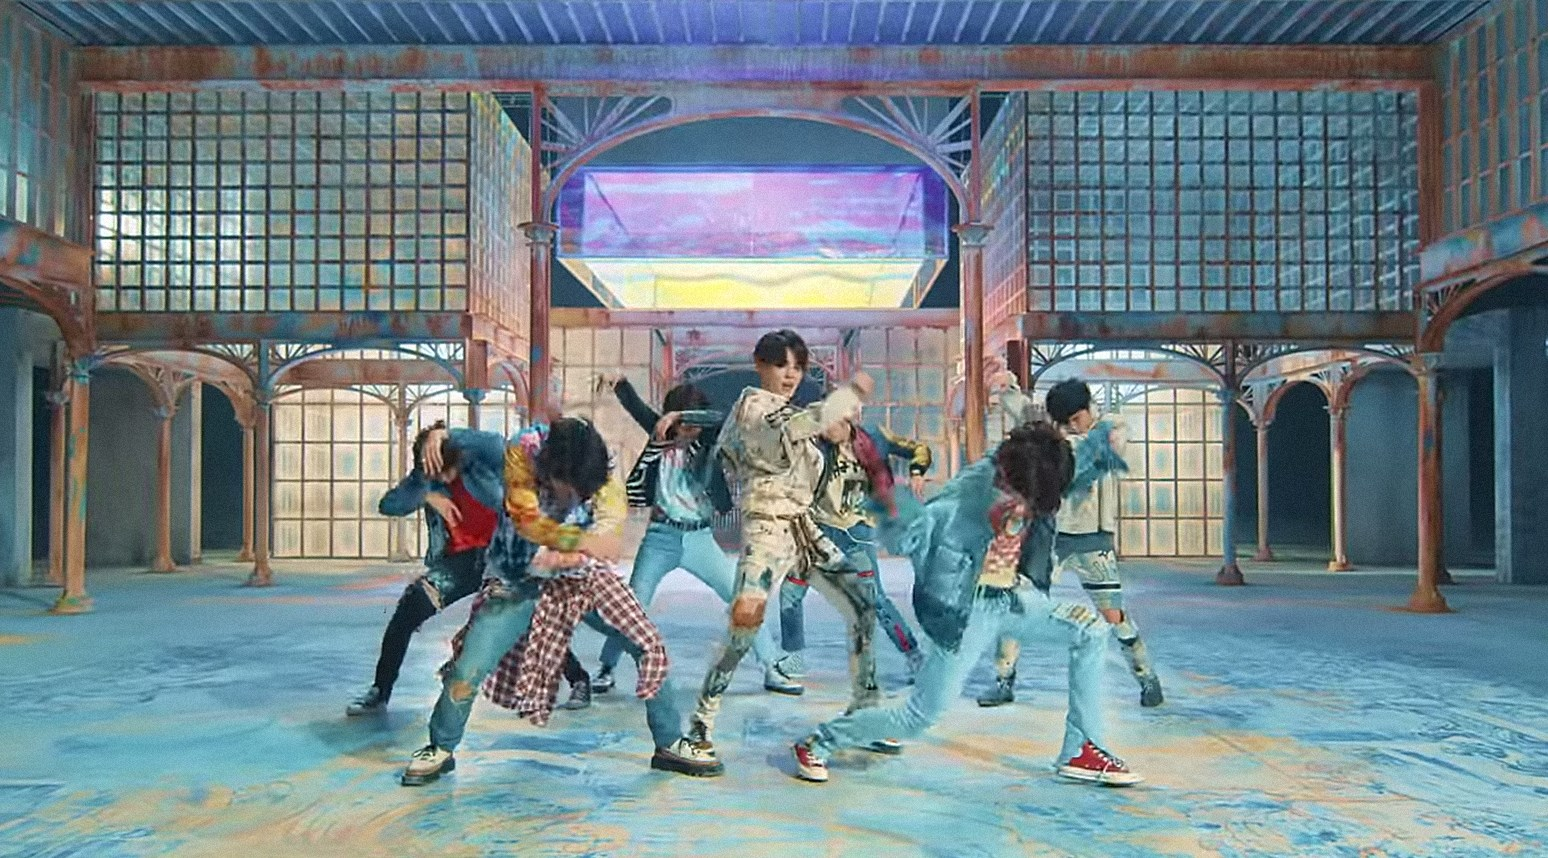 Situs Belanja Online, Amazon Rilis Penampakan Album Comeback BTS 'Love Yourself: Answer'